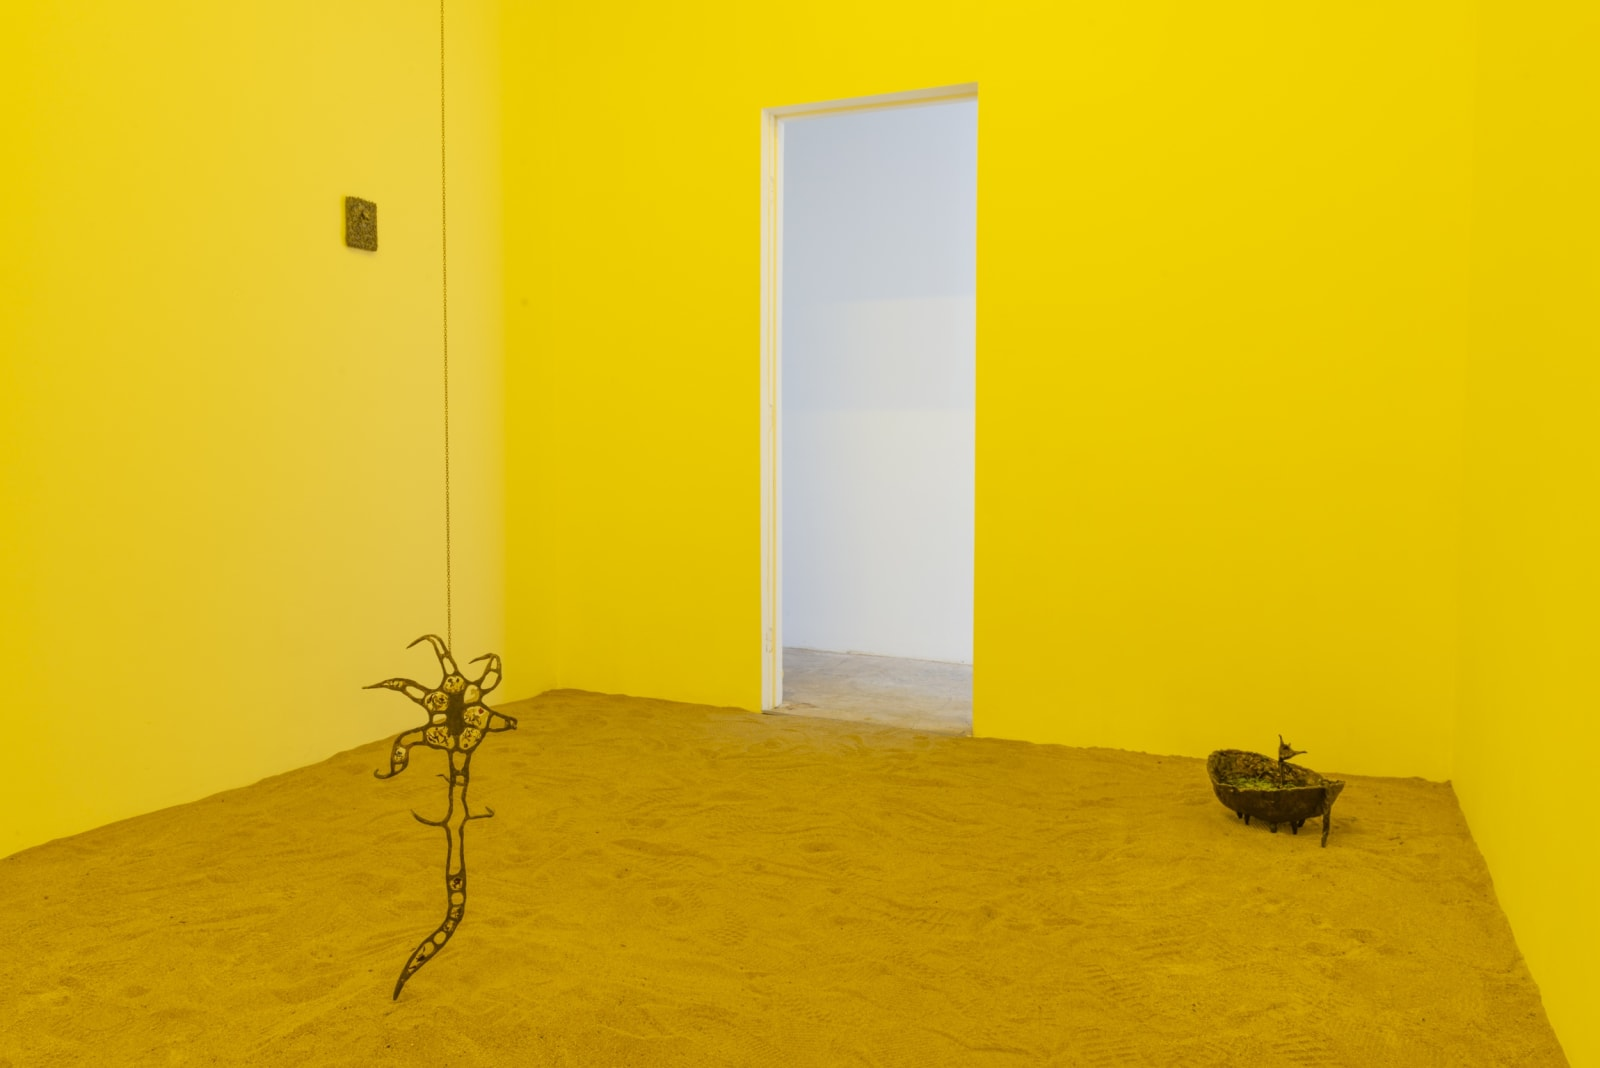 Installation view, Blossoming Carcass. Photo:Yubo Dong